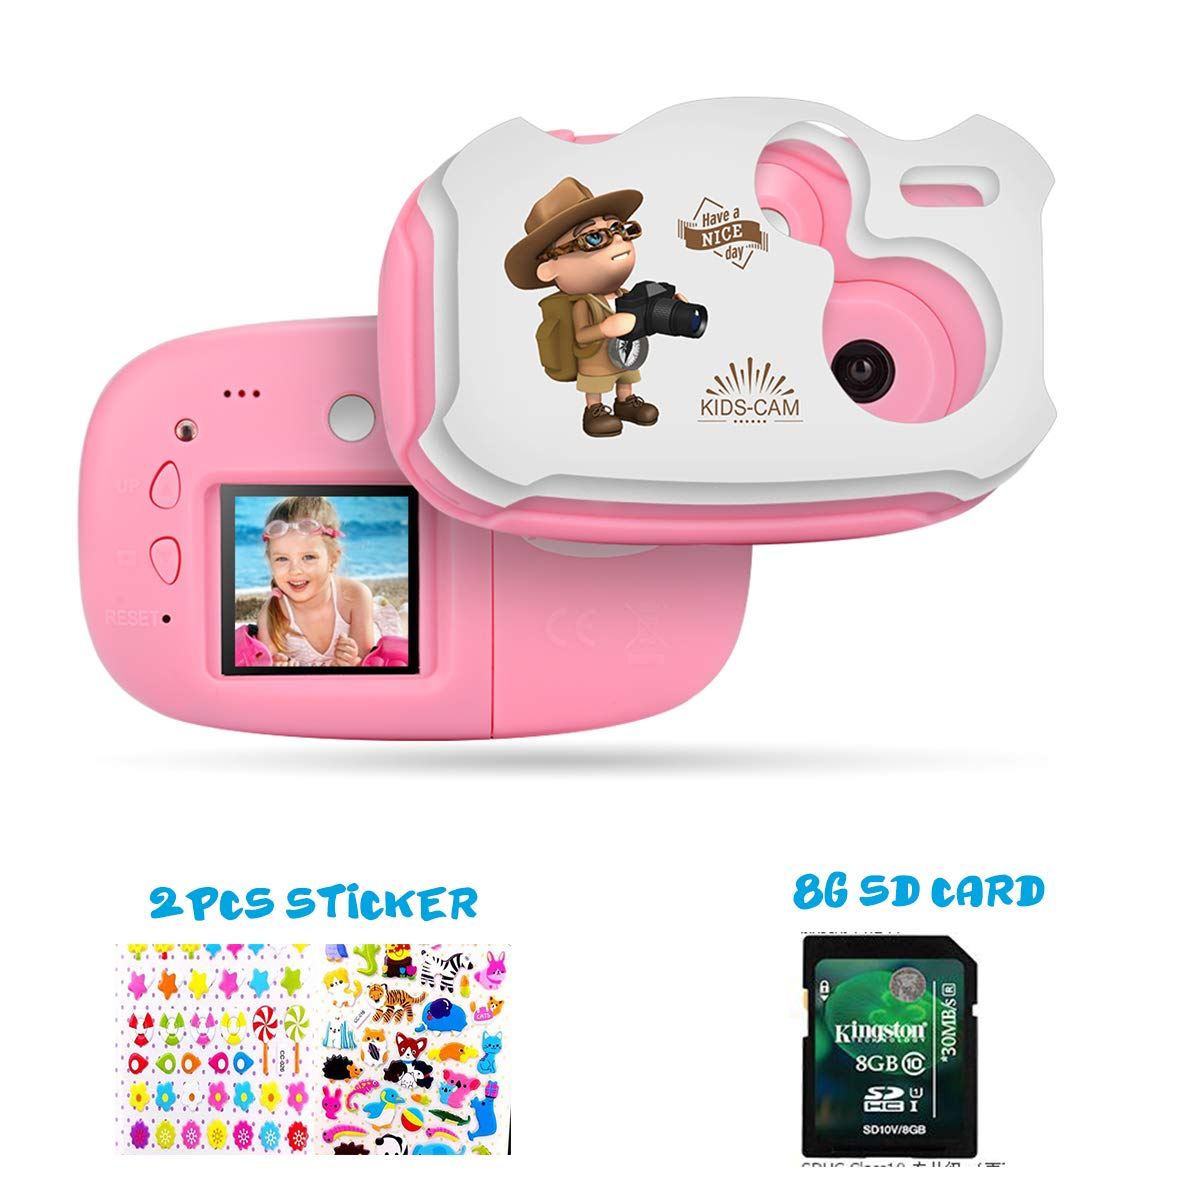 Kids Camera Cute DIY Digital Camera for Kids 1.44 inch TFT with Sticker for Girls Boys Pink with White AMKOV